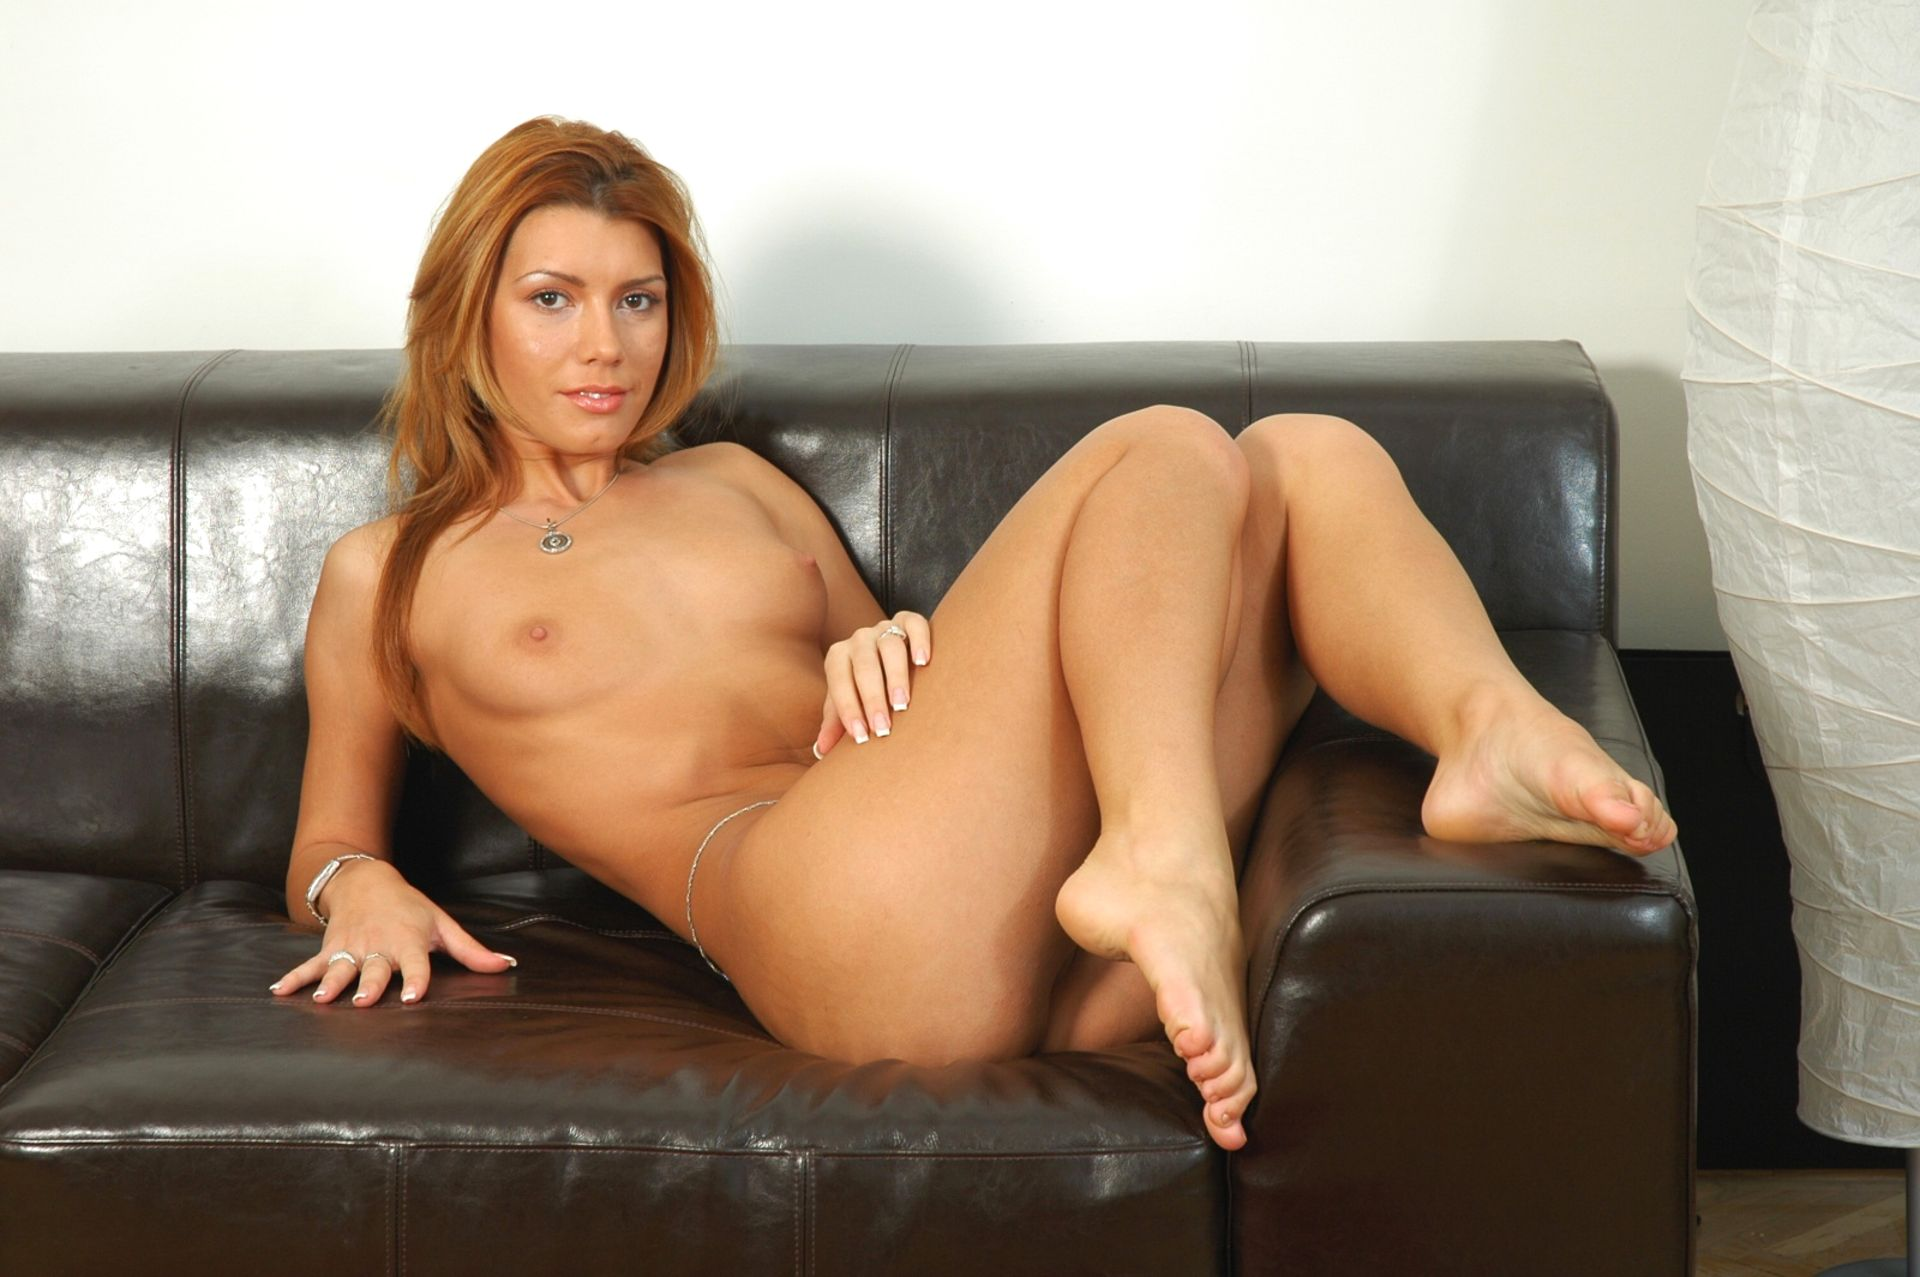 Tanya tate is an eager nude milf with amazingly shapely legs